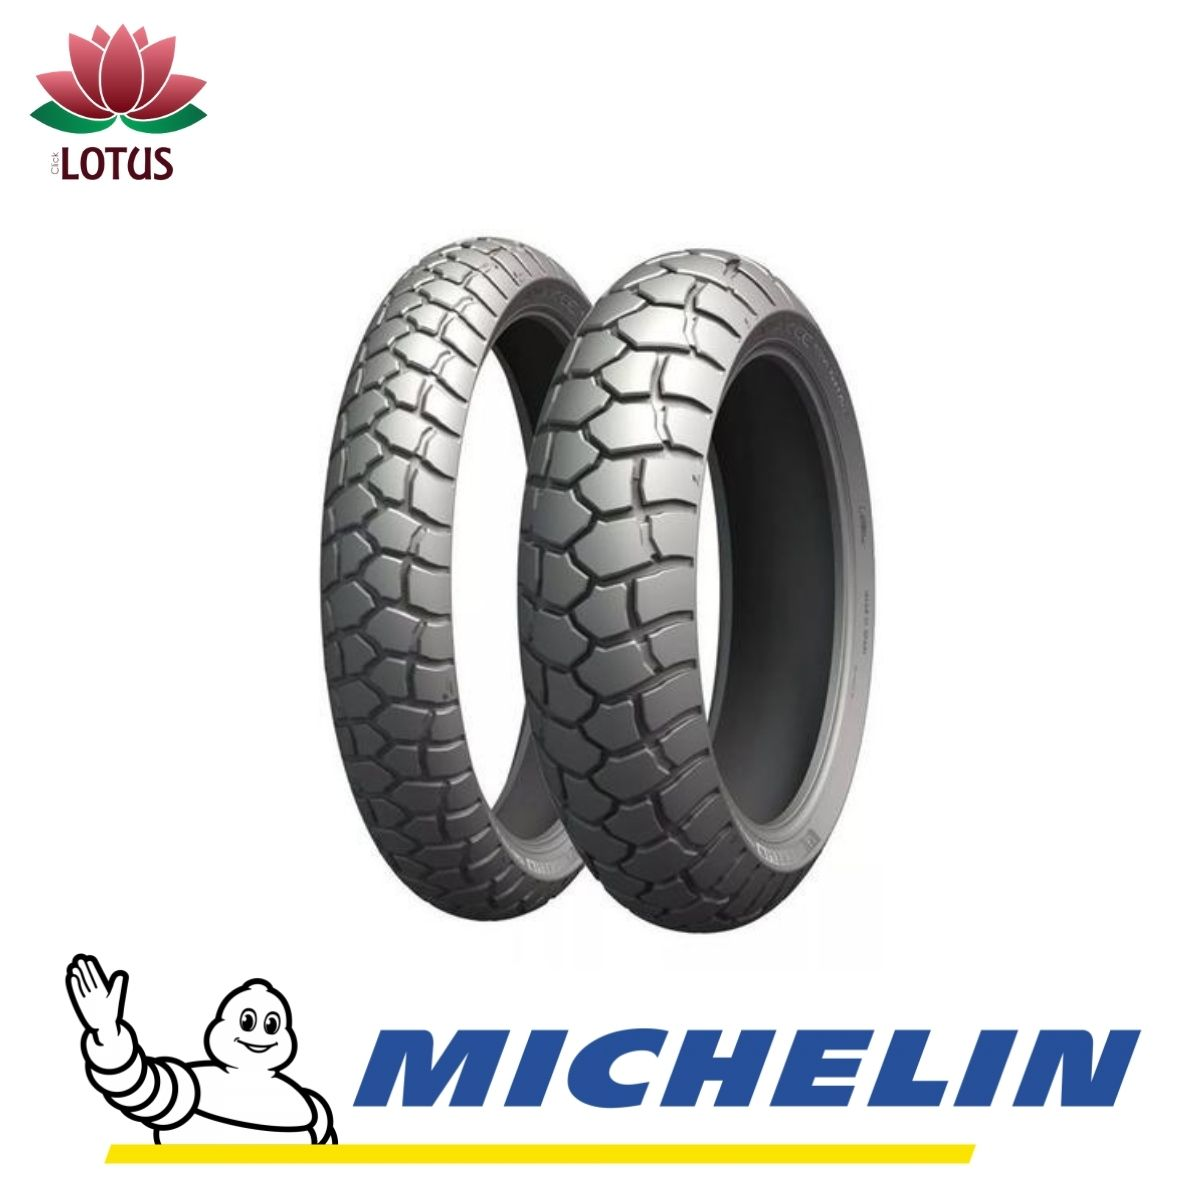 PAR PNEU MICHELIN MOTO ANAKEE ADVENTURE 110/80 19+150/70 17